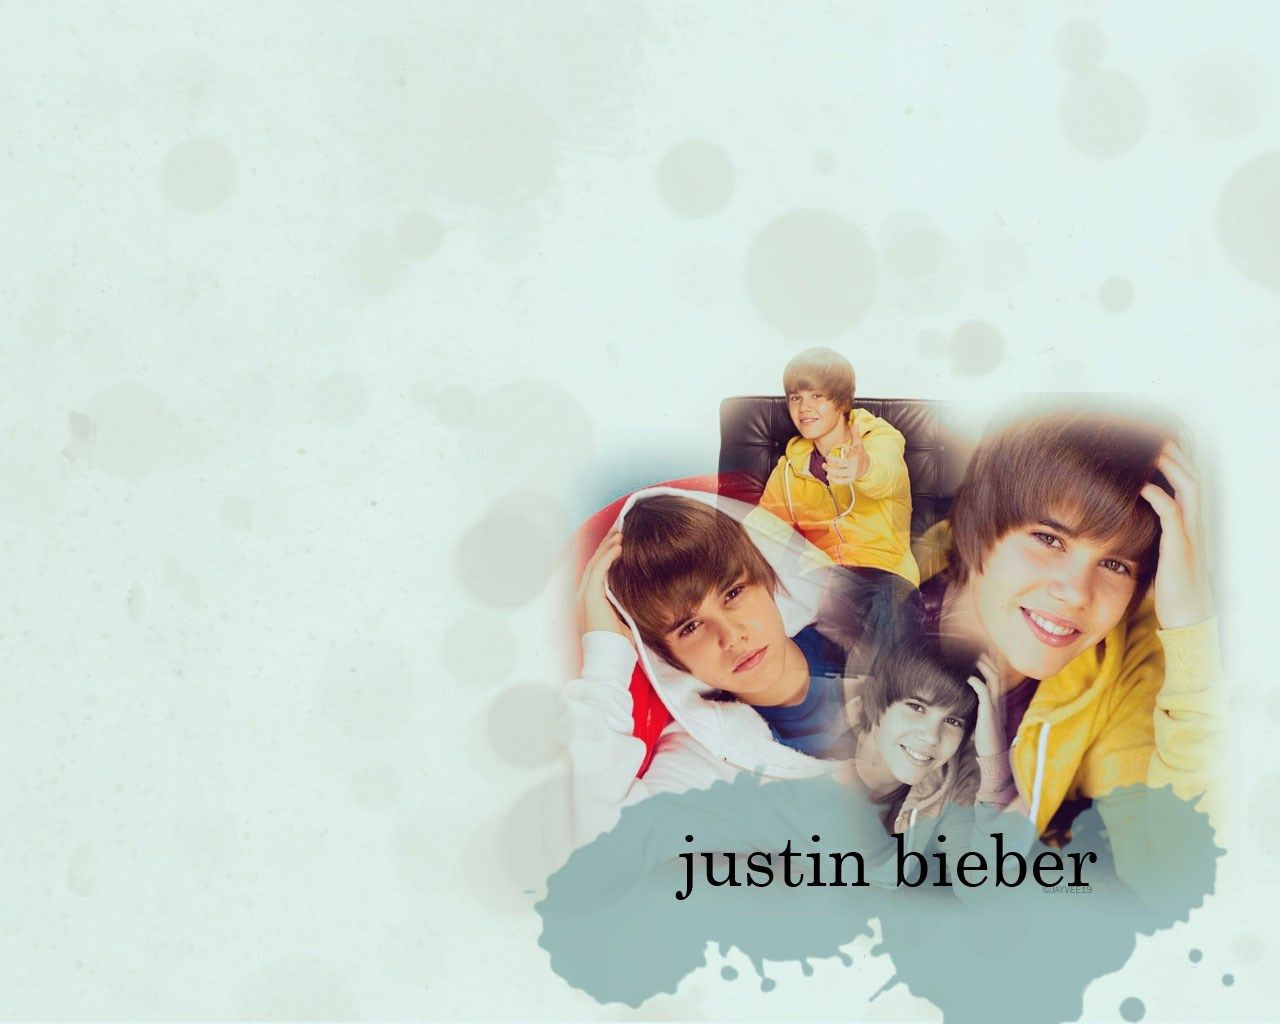 1280x1024 High Resolution Wallpapers Widescreen Justin